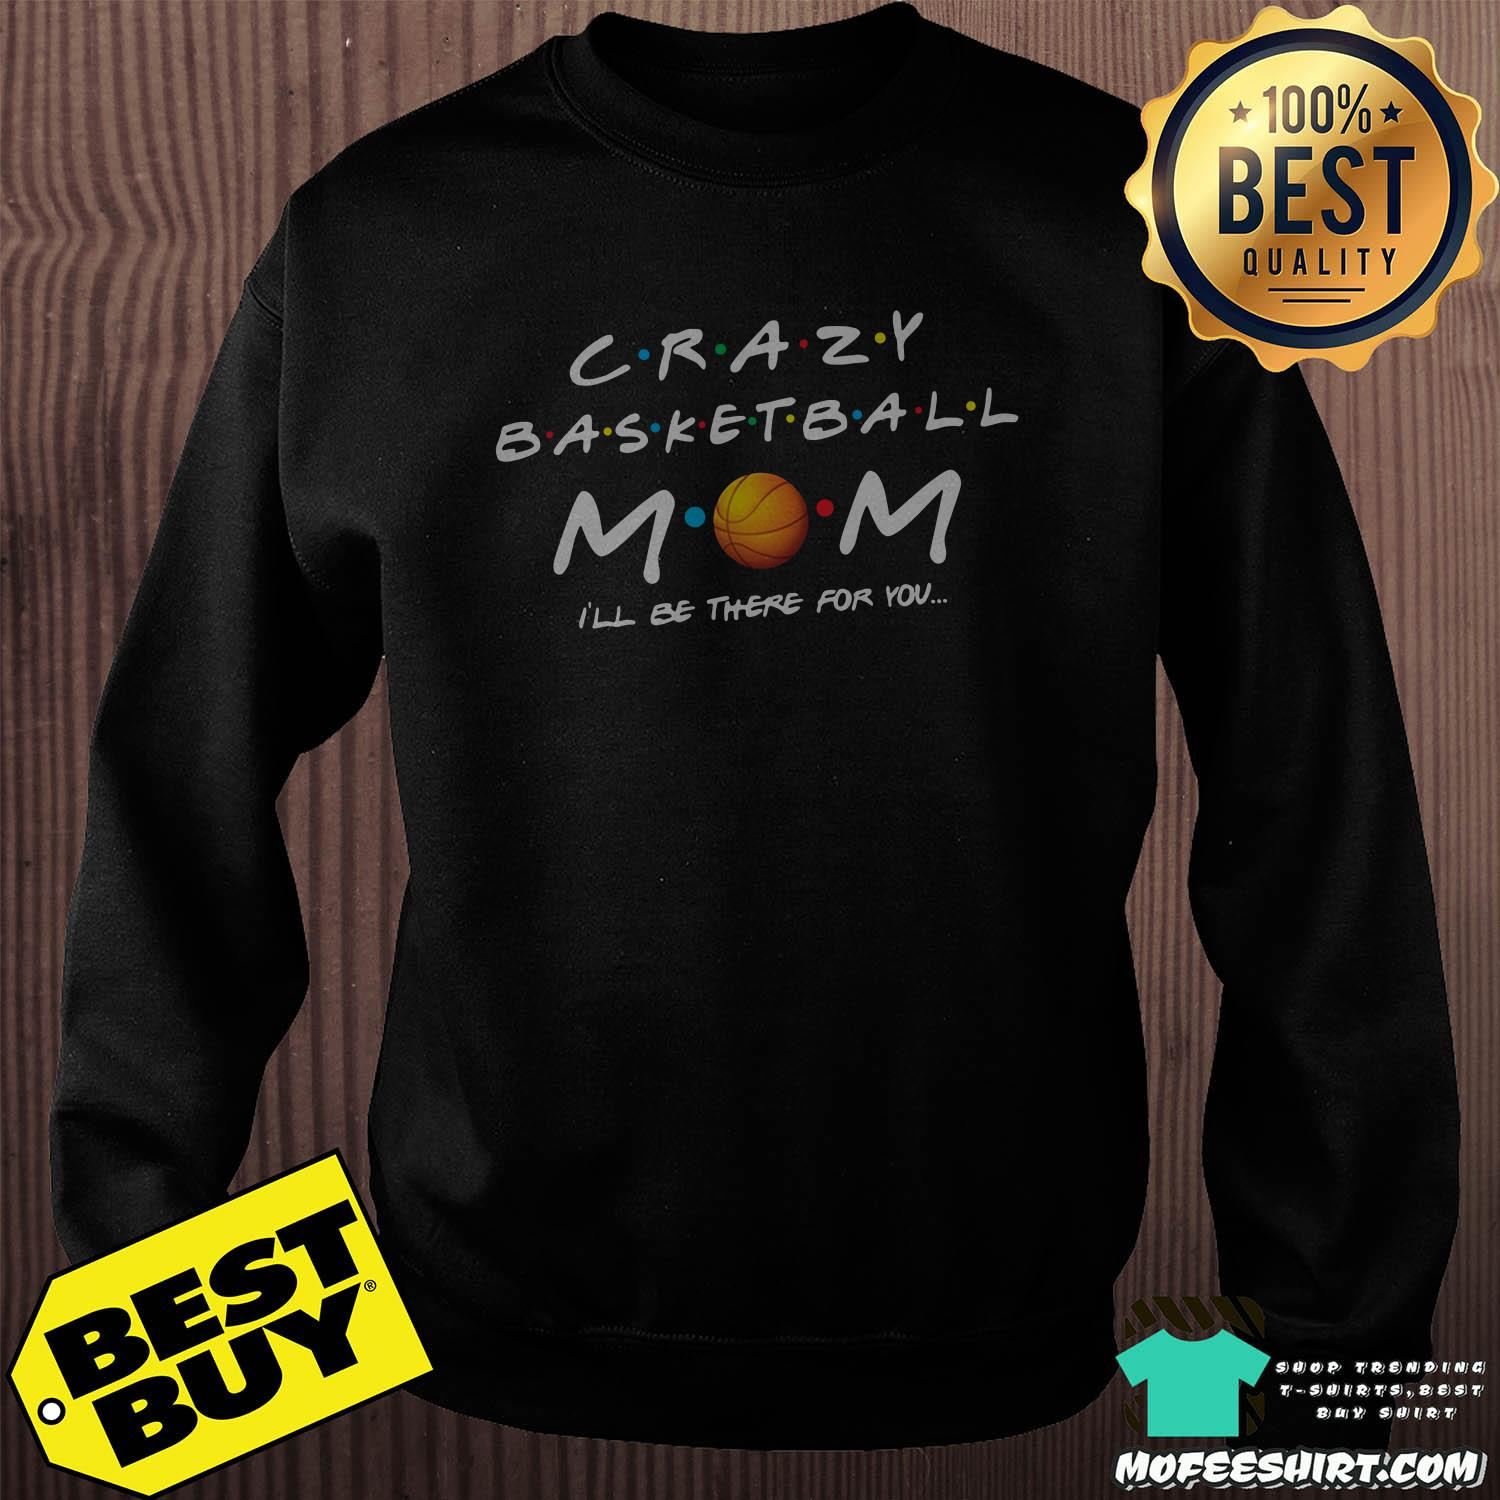 crazy basketball mom ill be there for you sweatshirt - Crazy Basketball MomI'll be there for you shirt